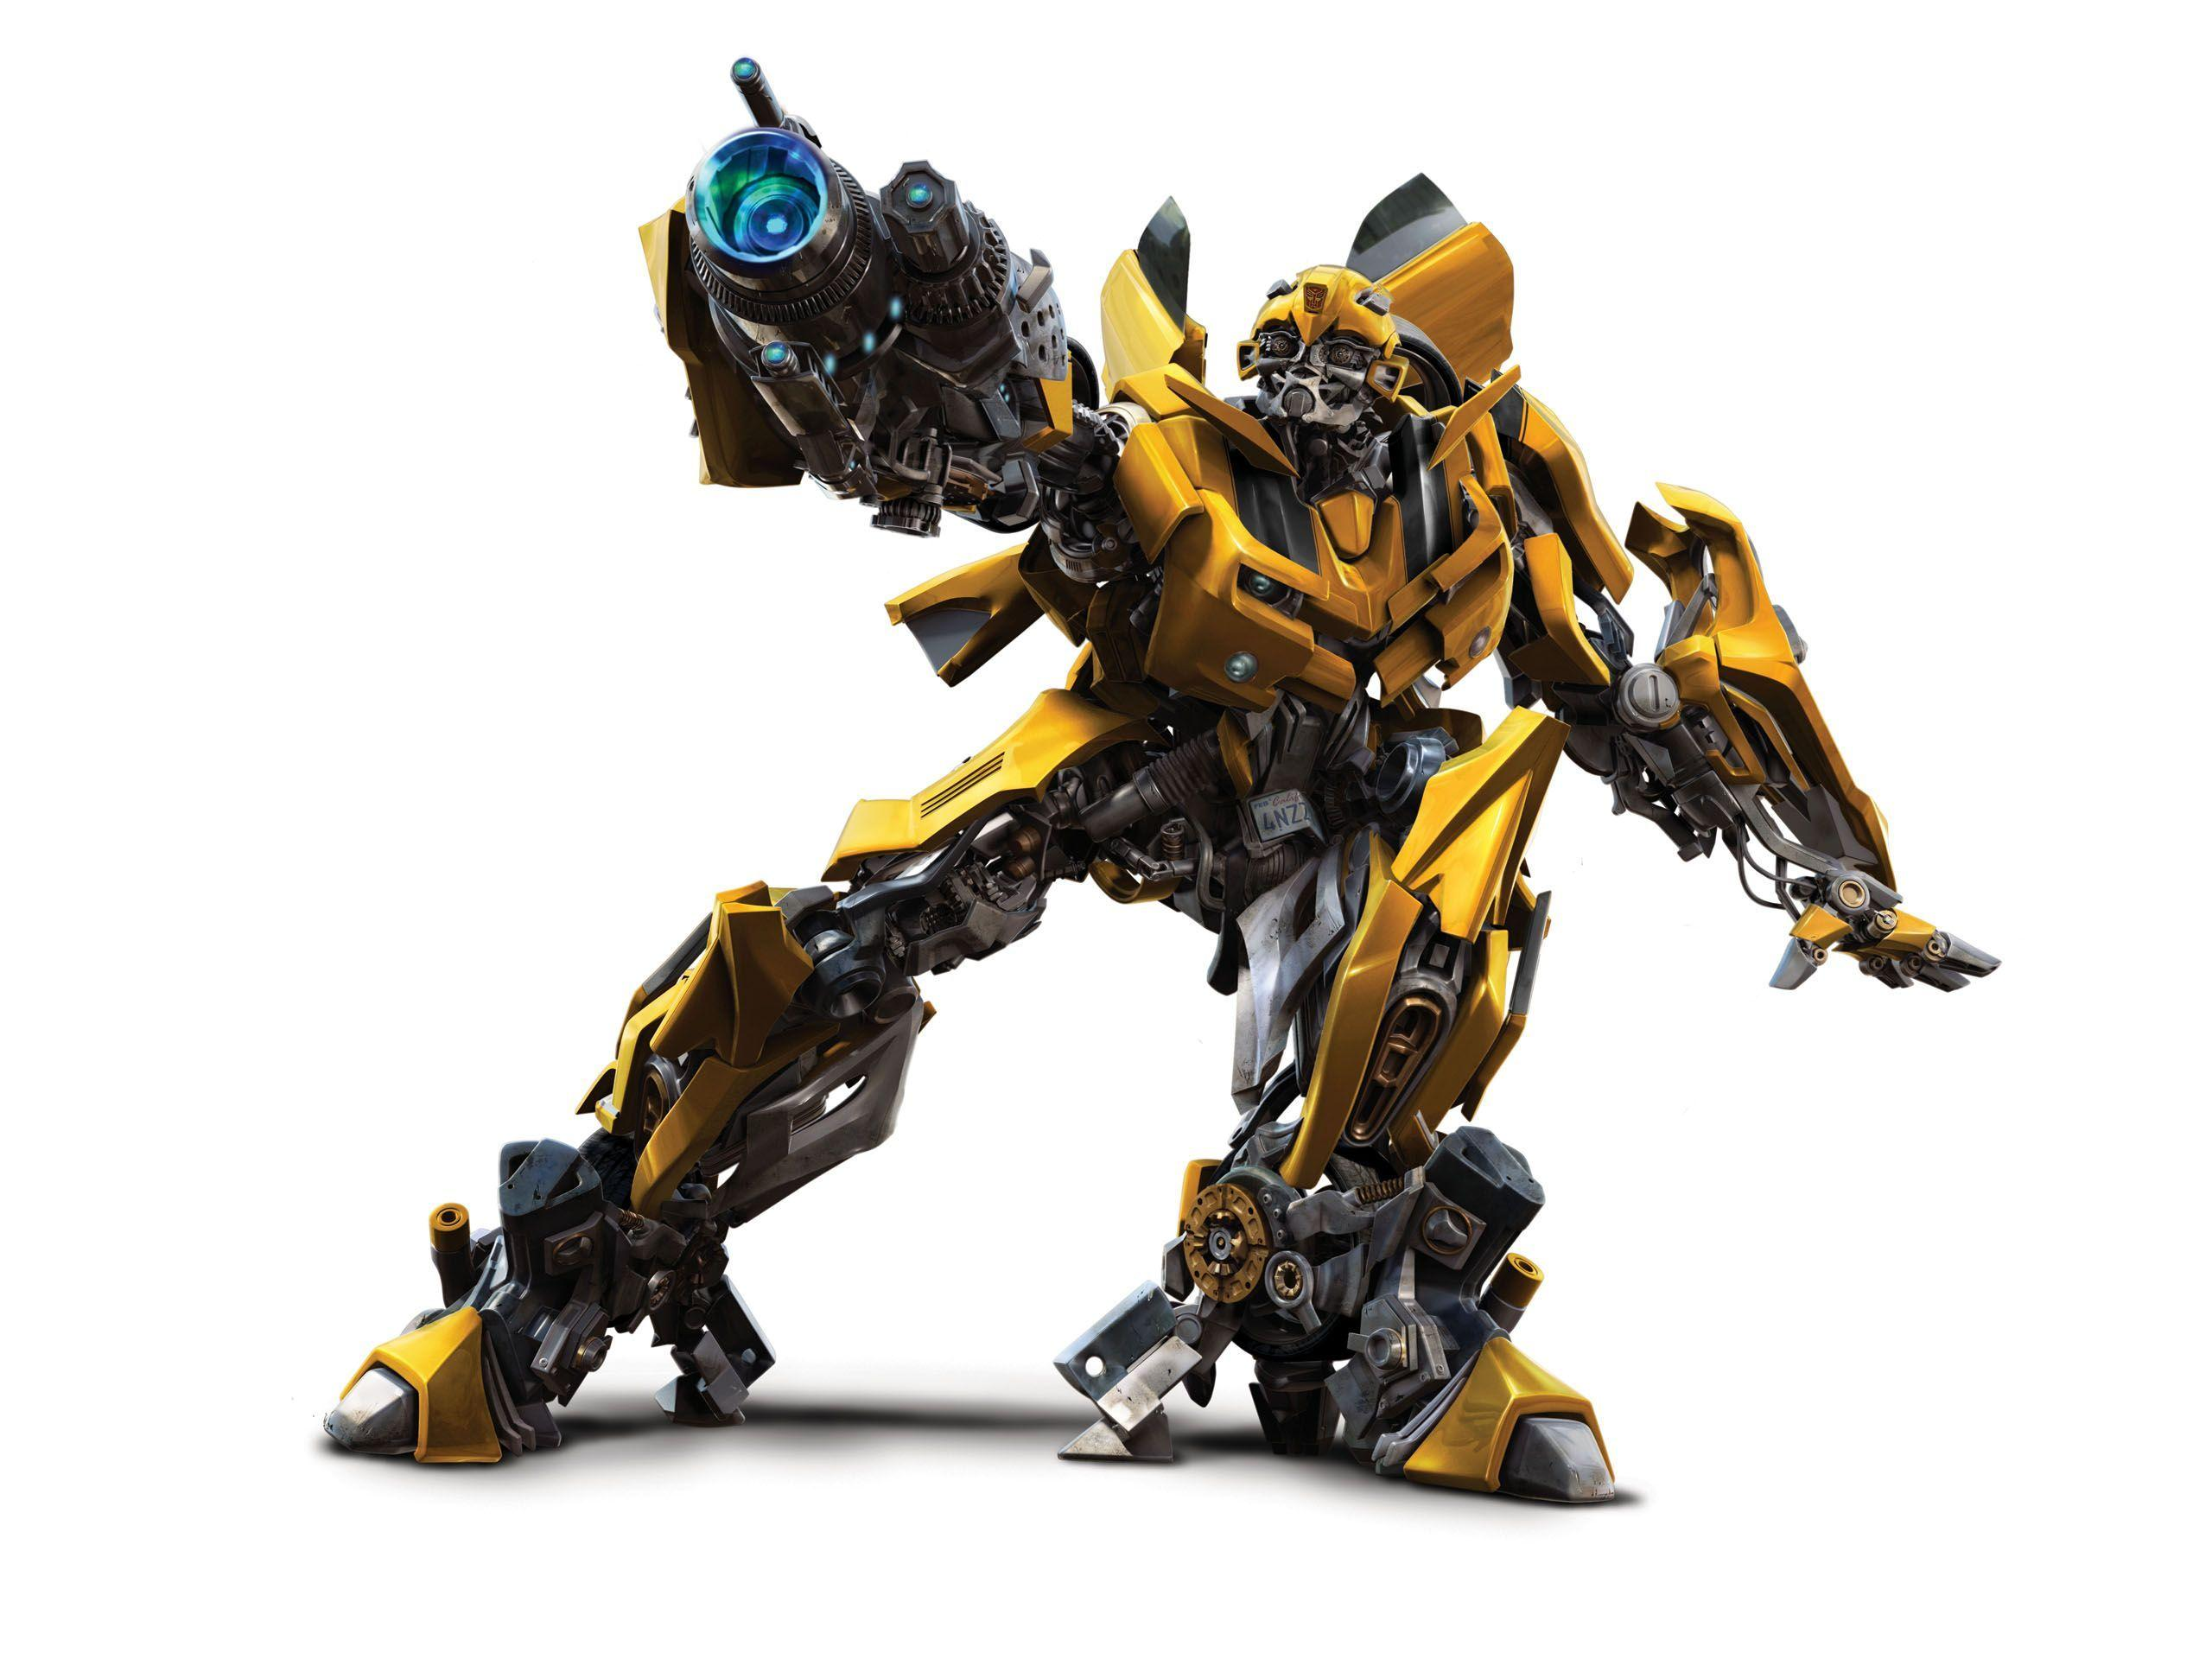 Bumblebee Transformers Wallpapers 23410 Best HD Wallpapers